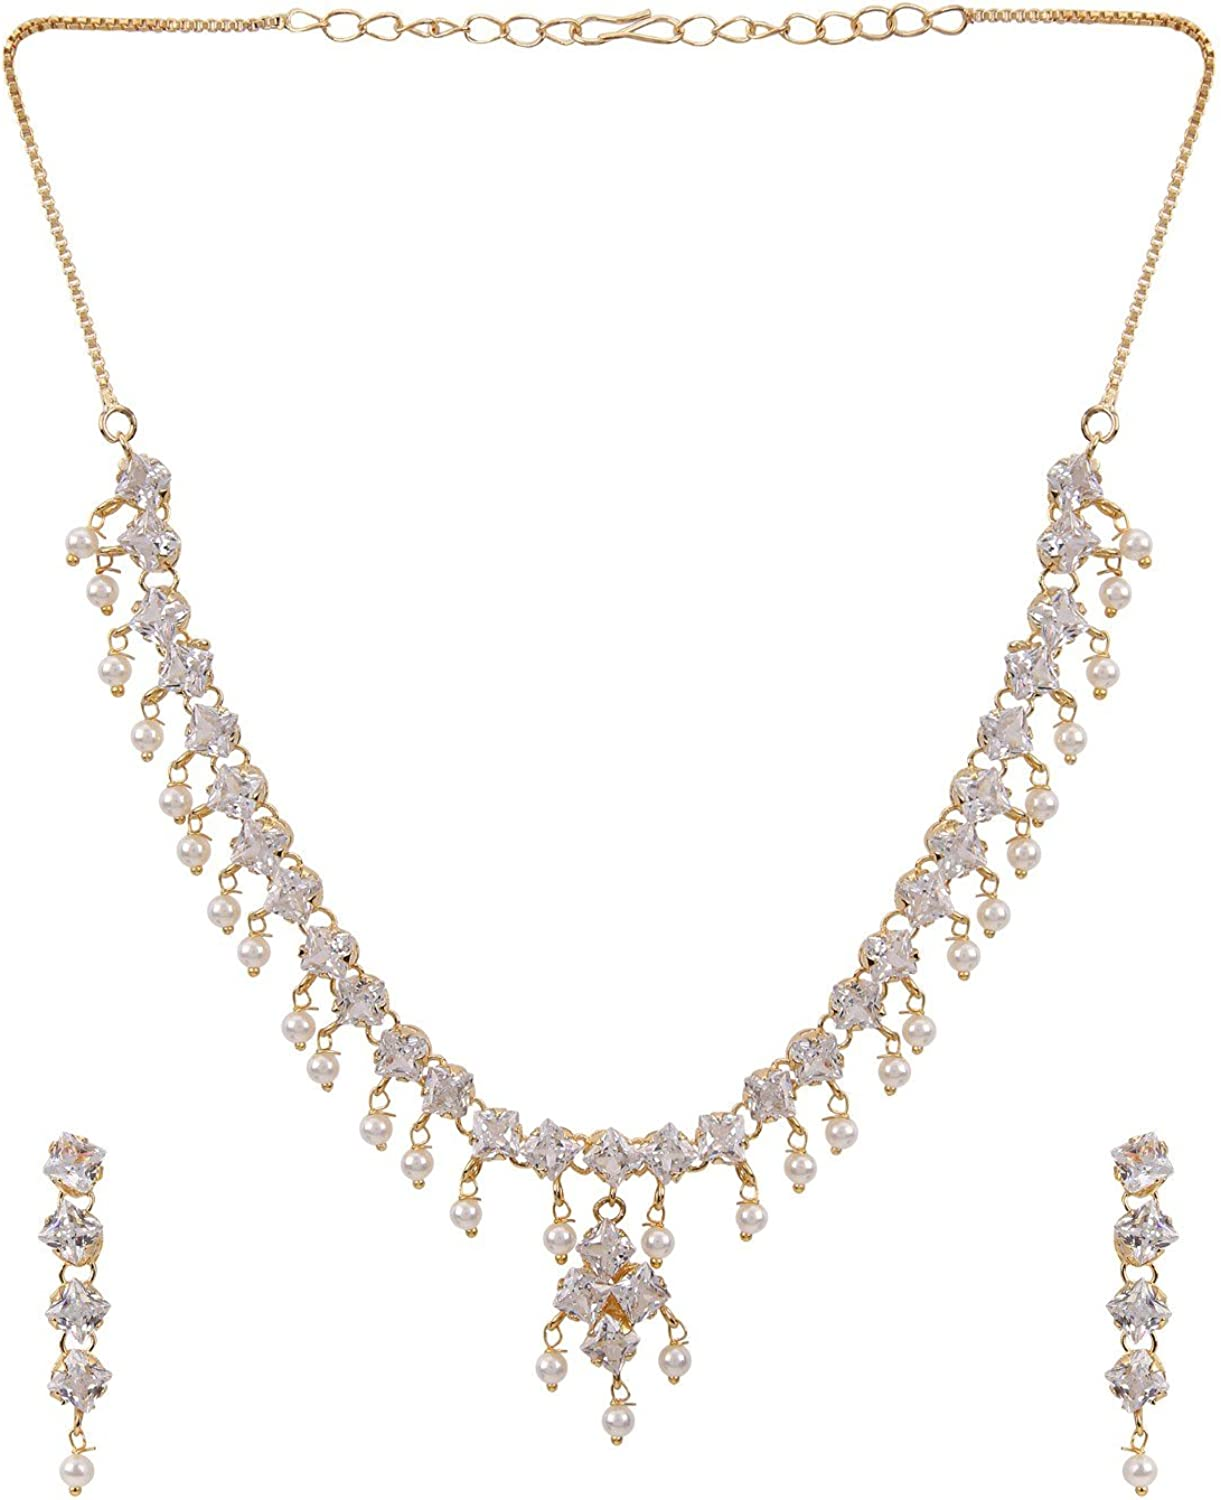 Efulgenz Bridal Crystal Cubic Zirconia Pearl Collar Necklace Earrings Jewelry Set for Women Girls Bride Bridesmaids